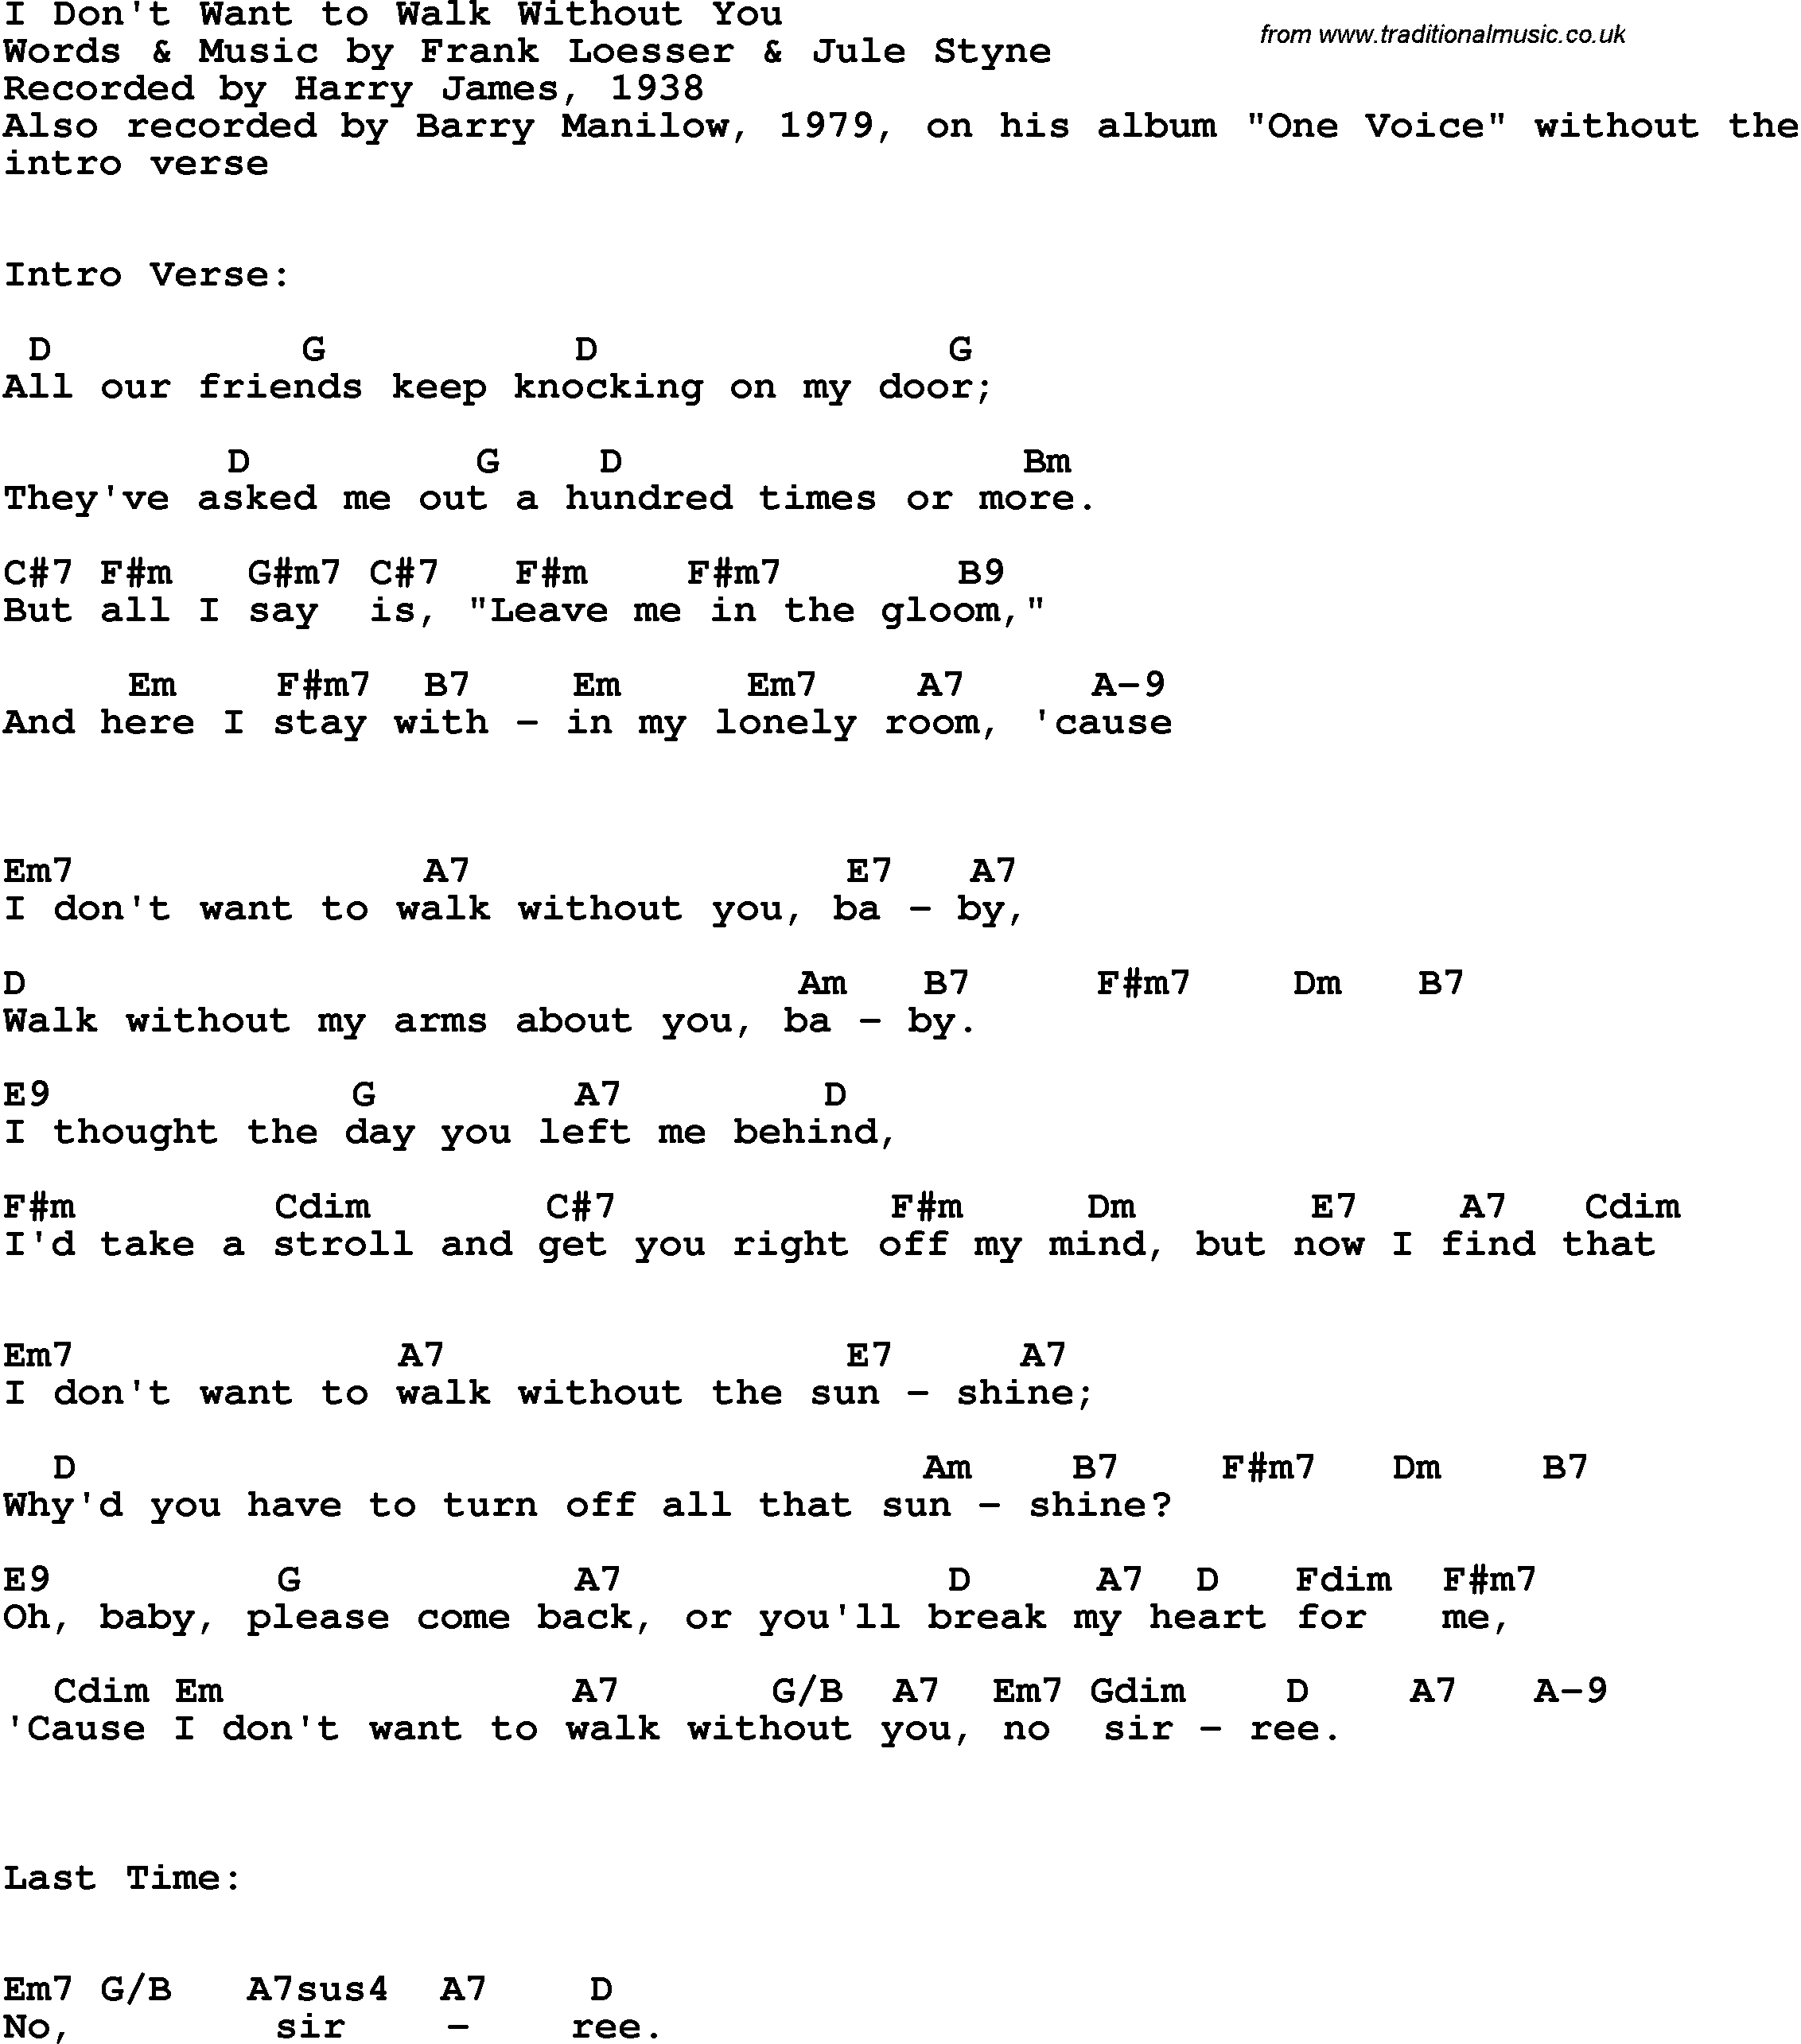 Song lyrics with guitar chords for I Don't Want To Walk